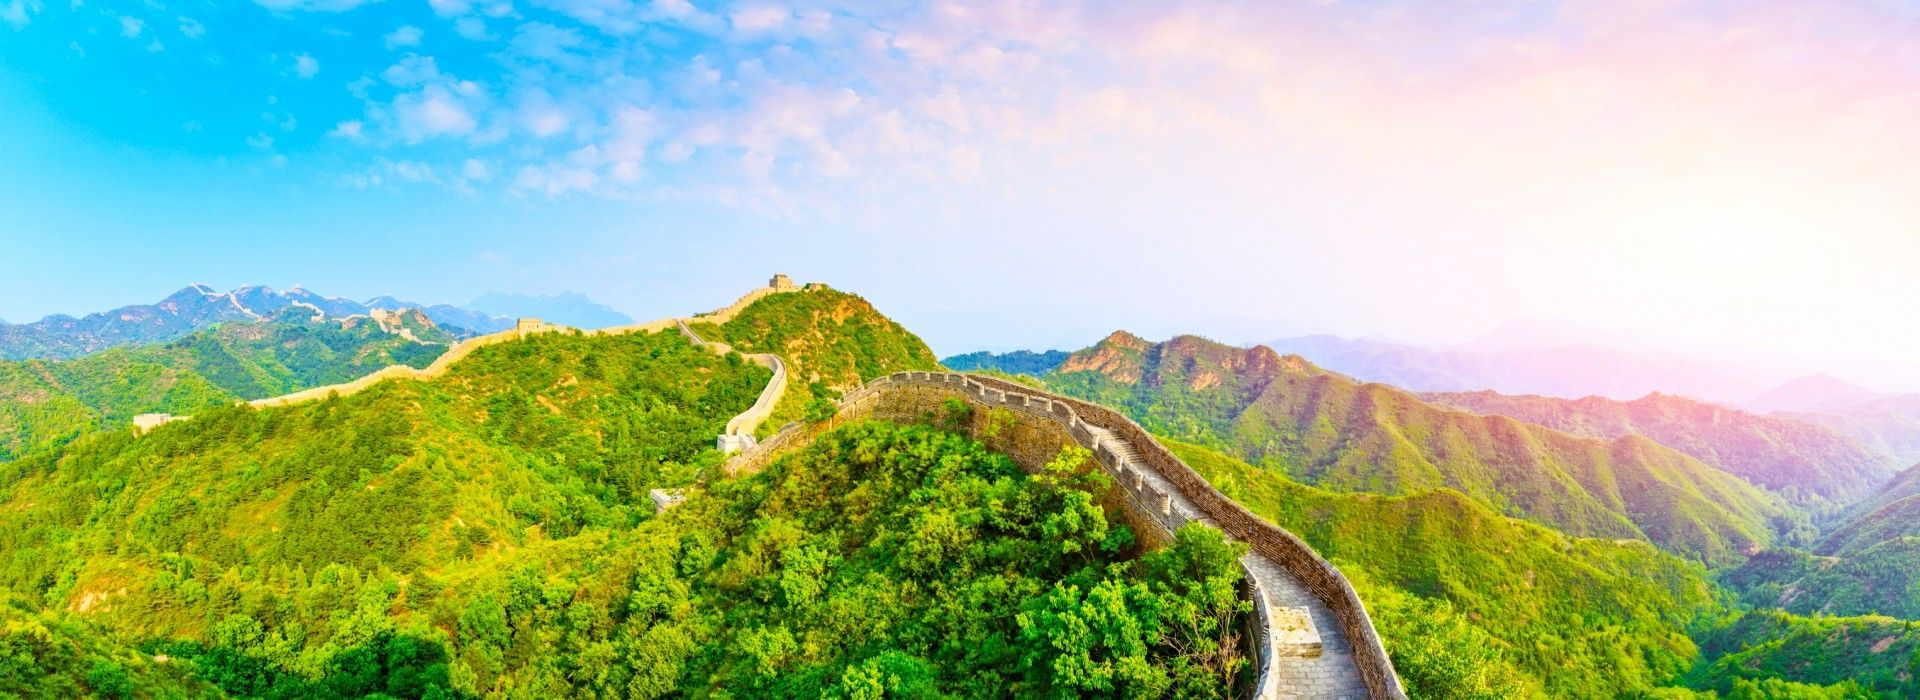 Special interests and hobbies Tours in China